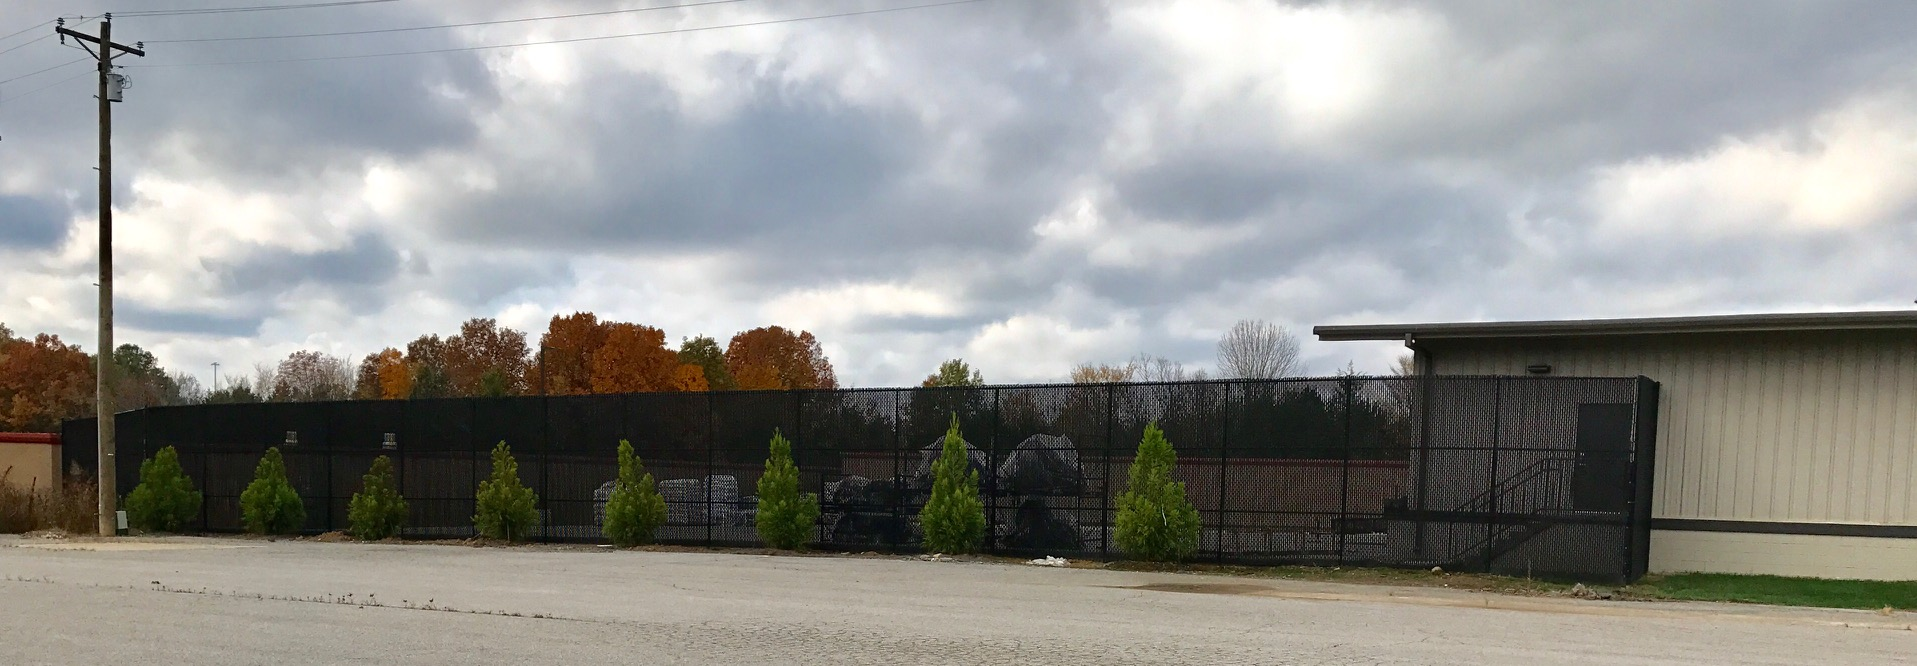 12ft Commercial Chain Link Fence with Privacy Slats